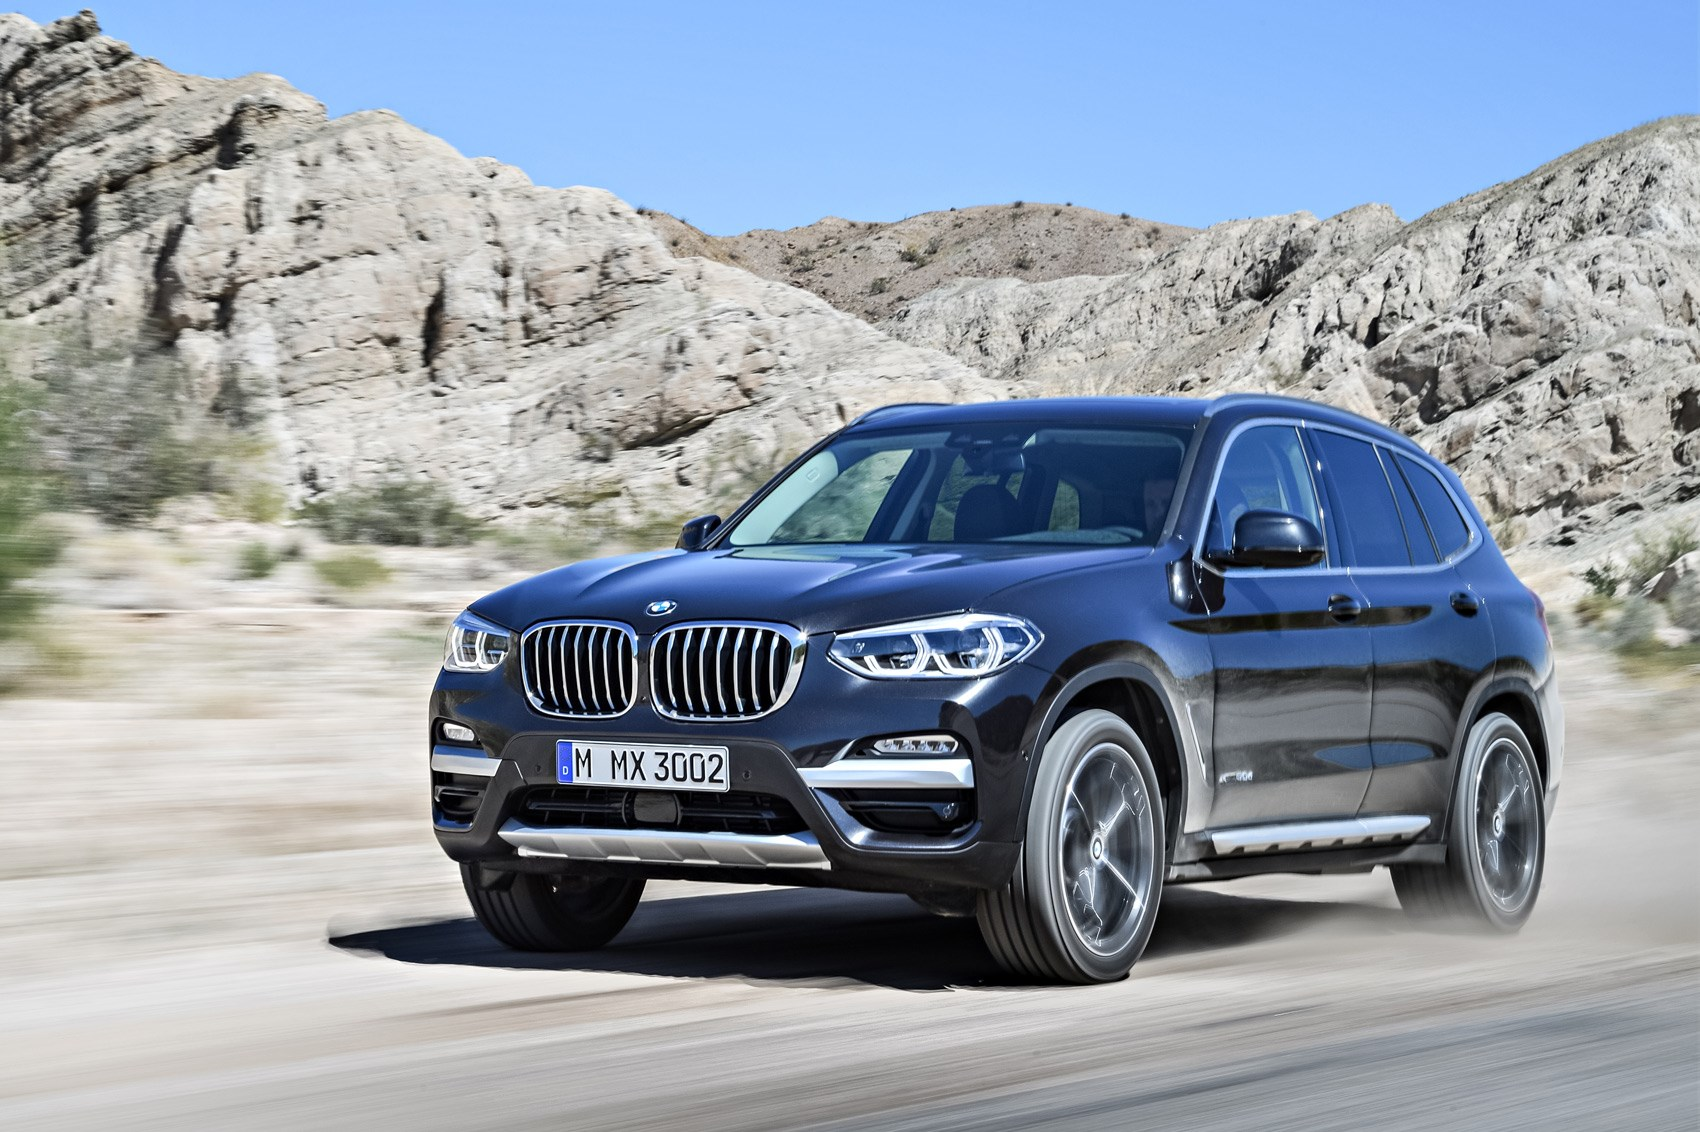 New BMW X3 SUV Revealed: Munich's Photocopier Is Working